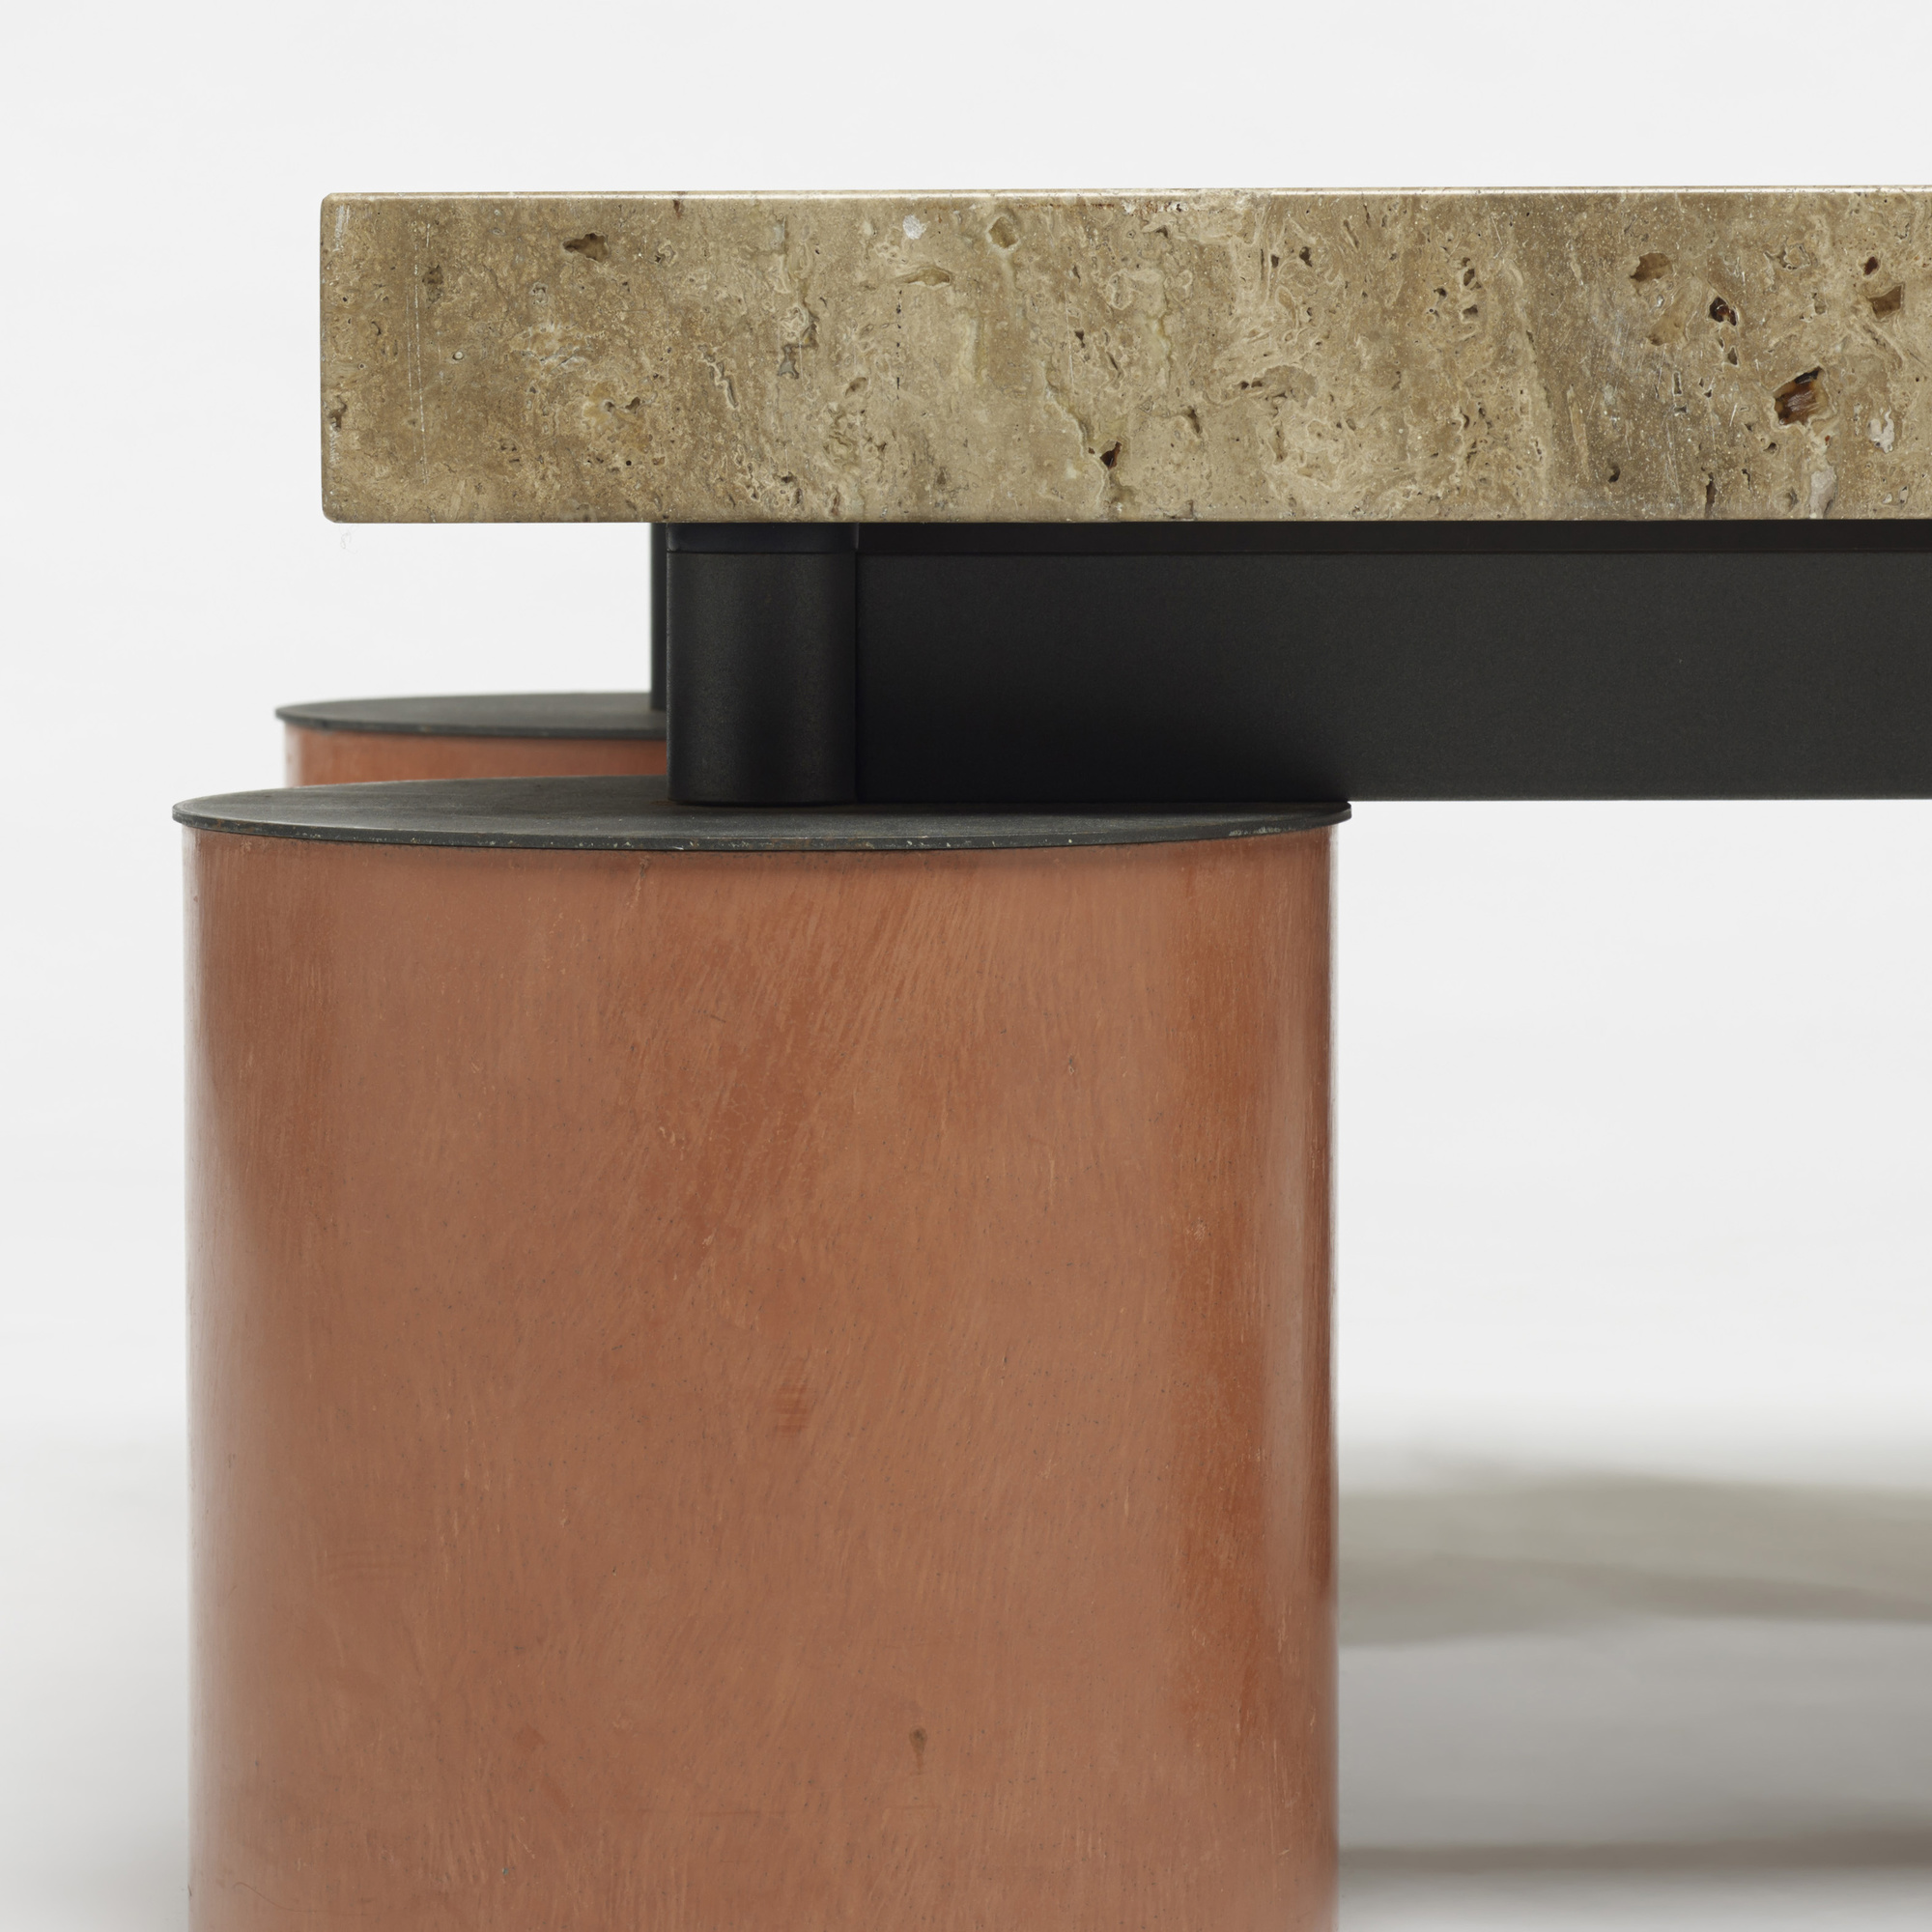 303: Massimo Vignelli / custom coffee table (3 of 3)